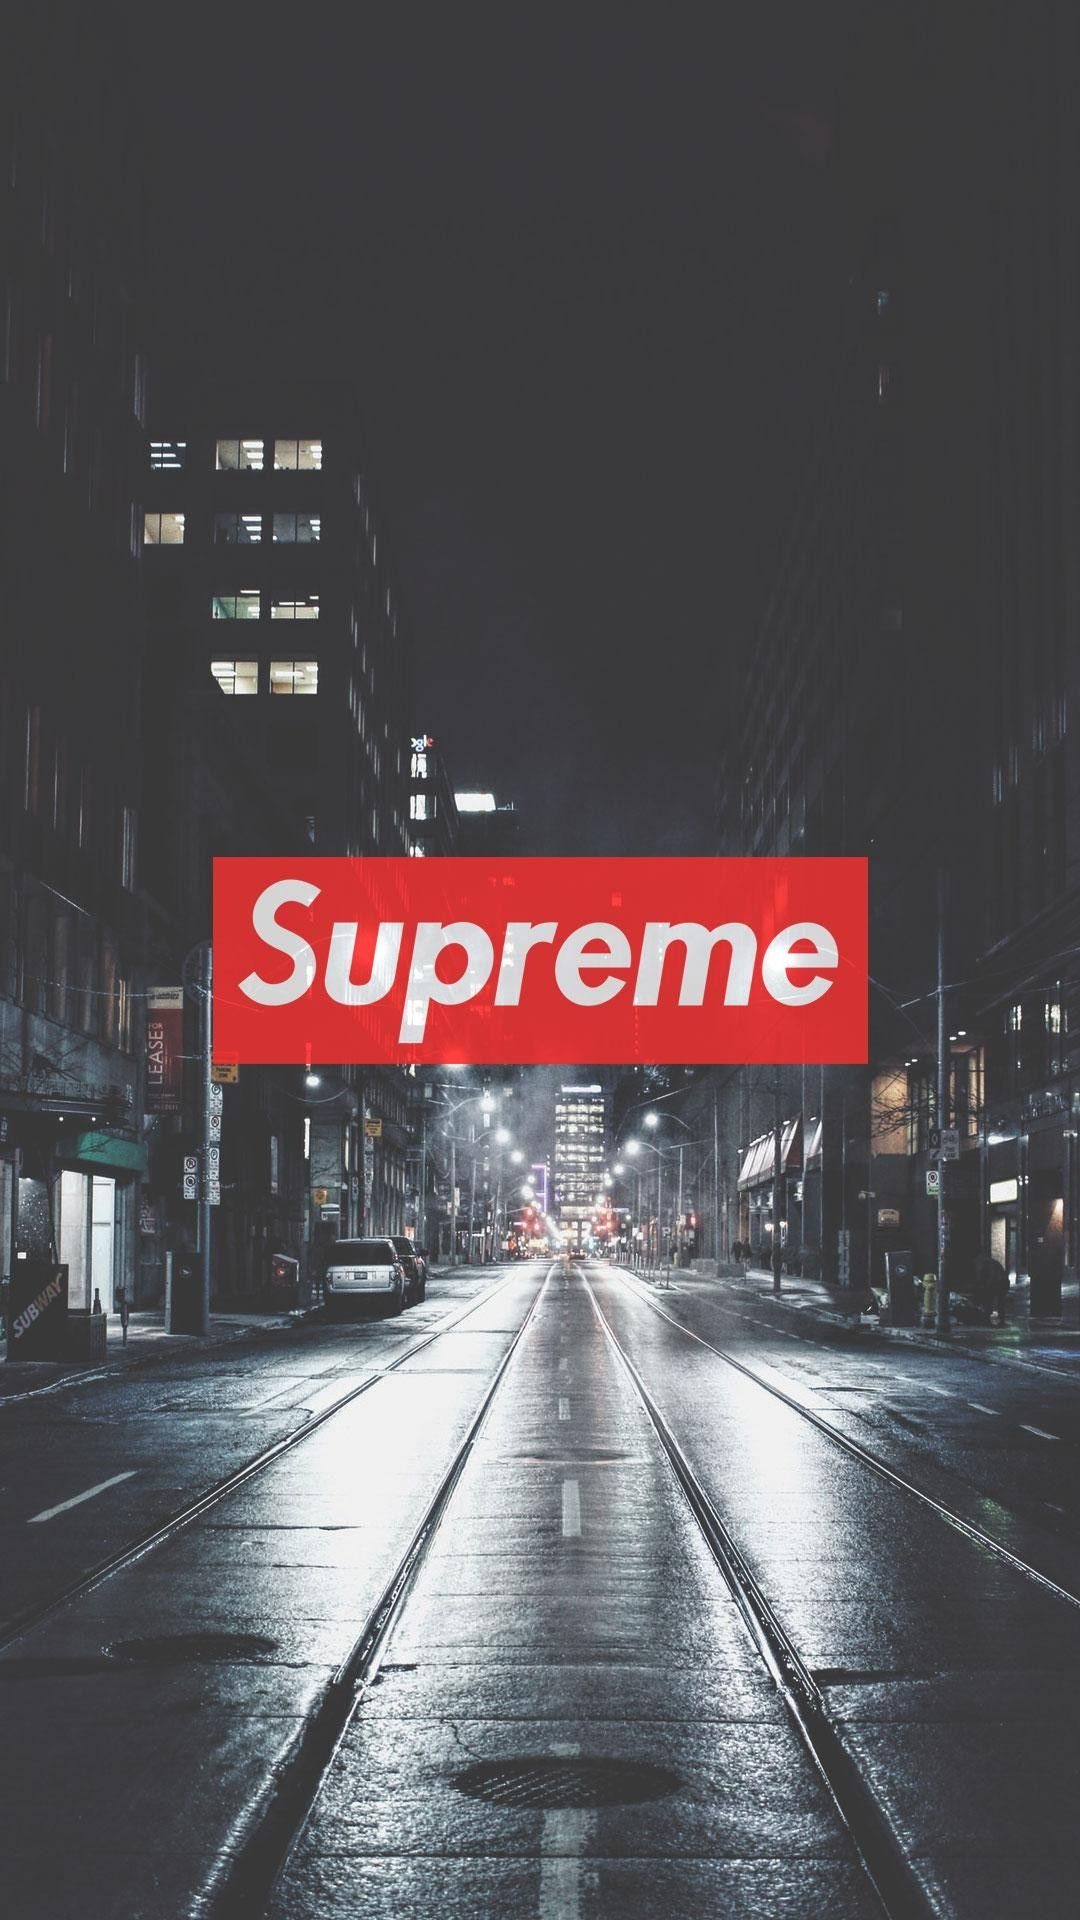 Follow The Board Hypebeast Wallpapers By Nixxboi For More Supreme Wallpaper Supreme Wallpaper Hd Hypebeast Wallpaper